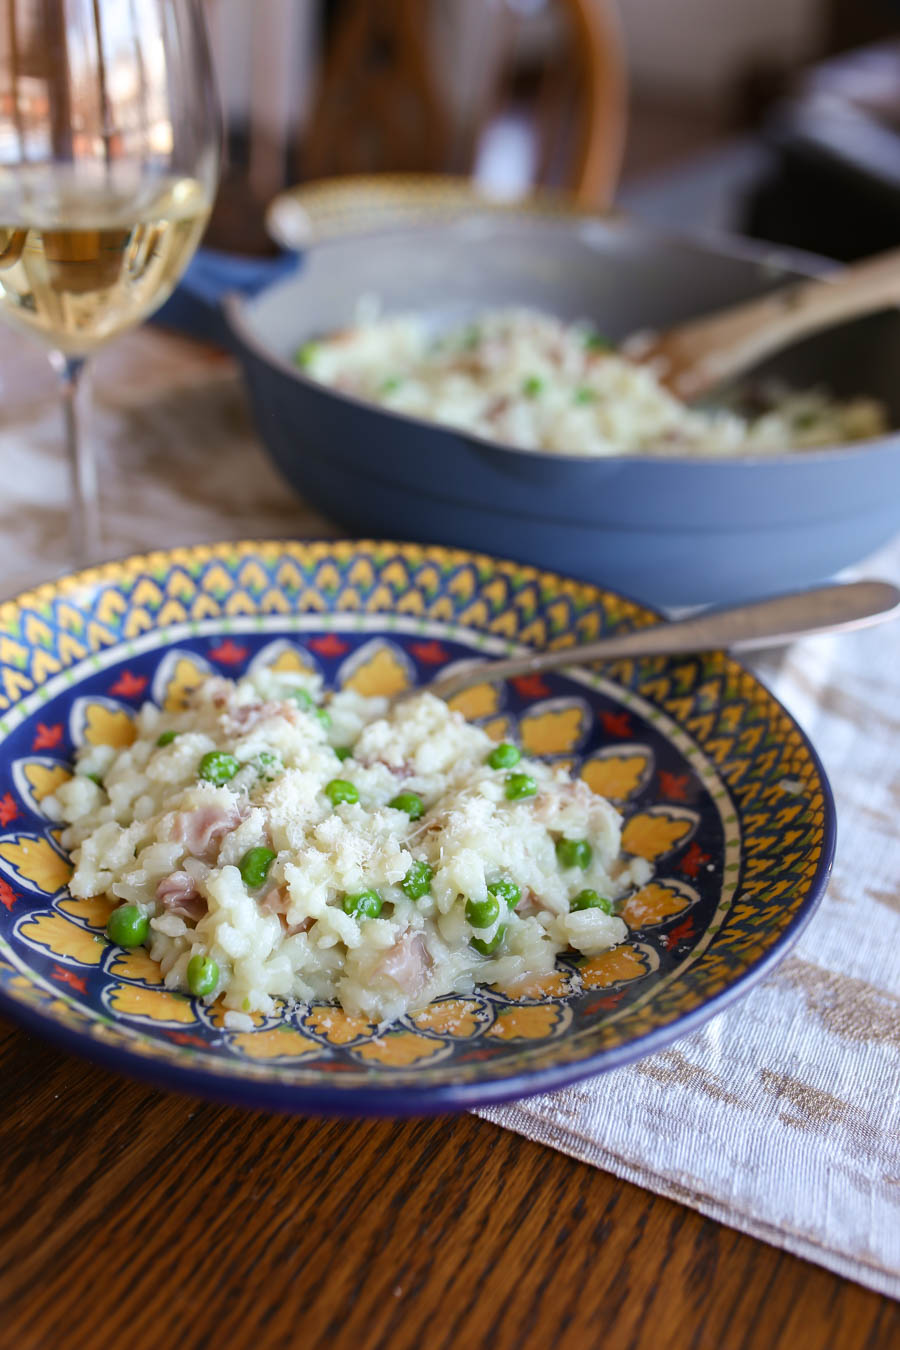 How To Make A Great Risotto